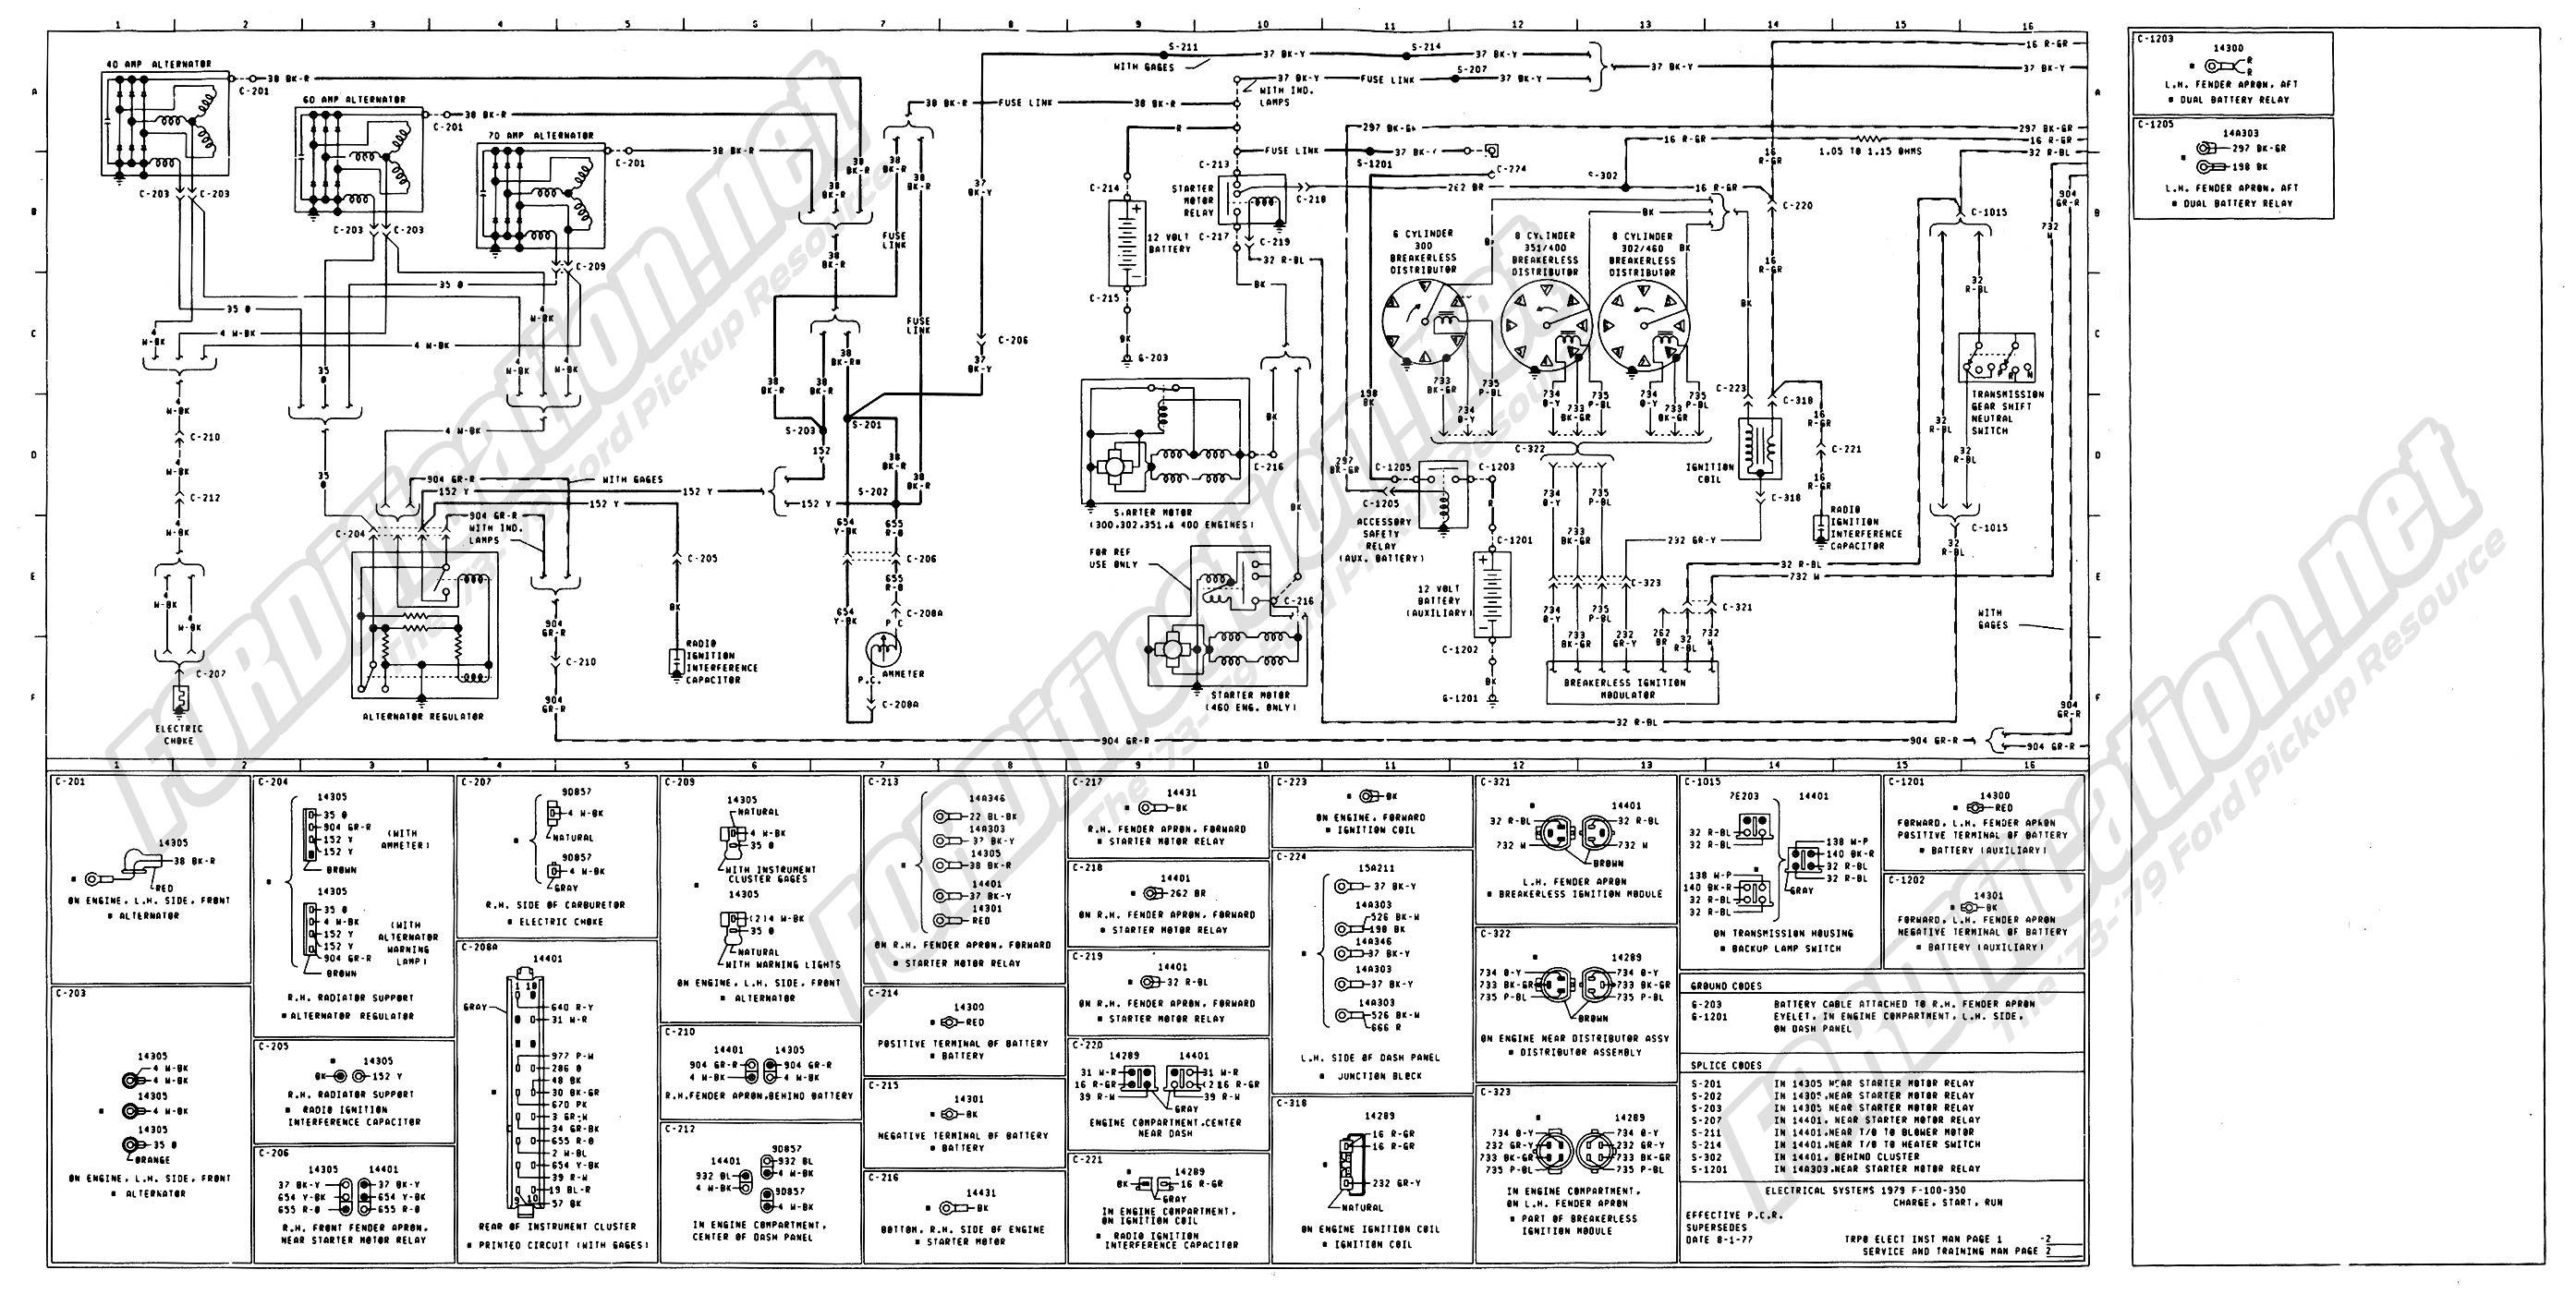 Electrical Wiring Diagrams 1992 Ford Library F150 Diagram Schematic 1978 F 250 Schematics For Opinions About U2022 Truck